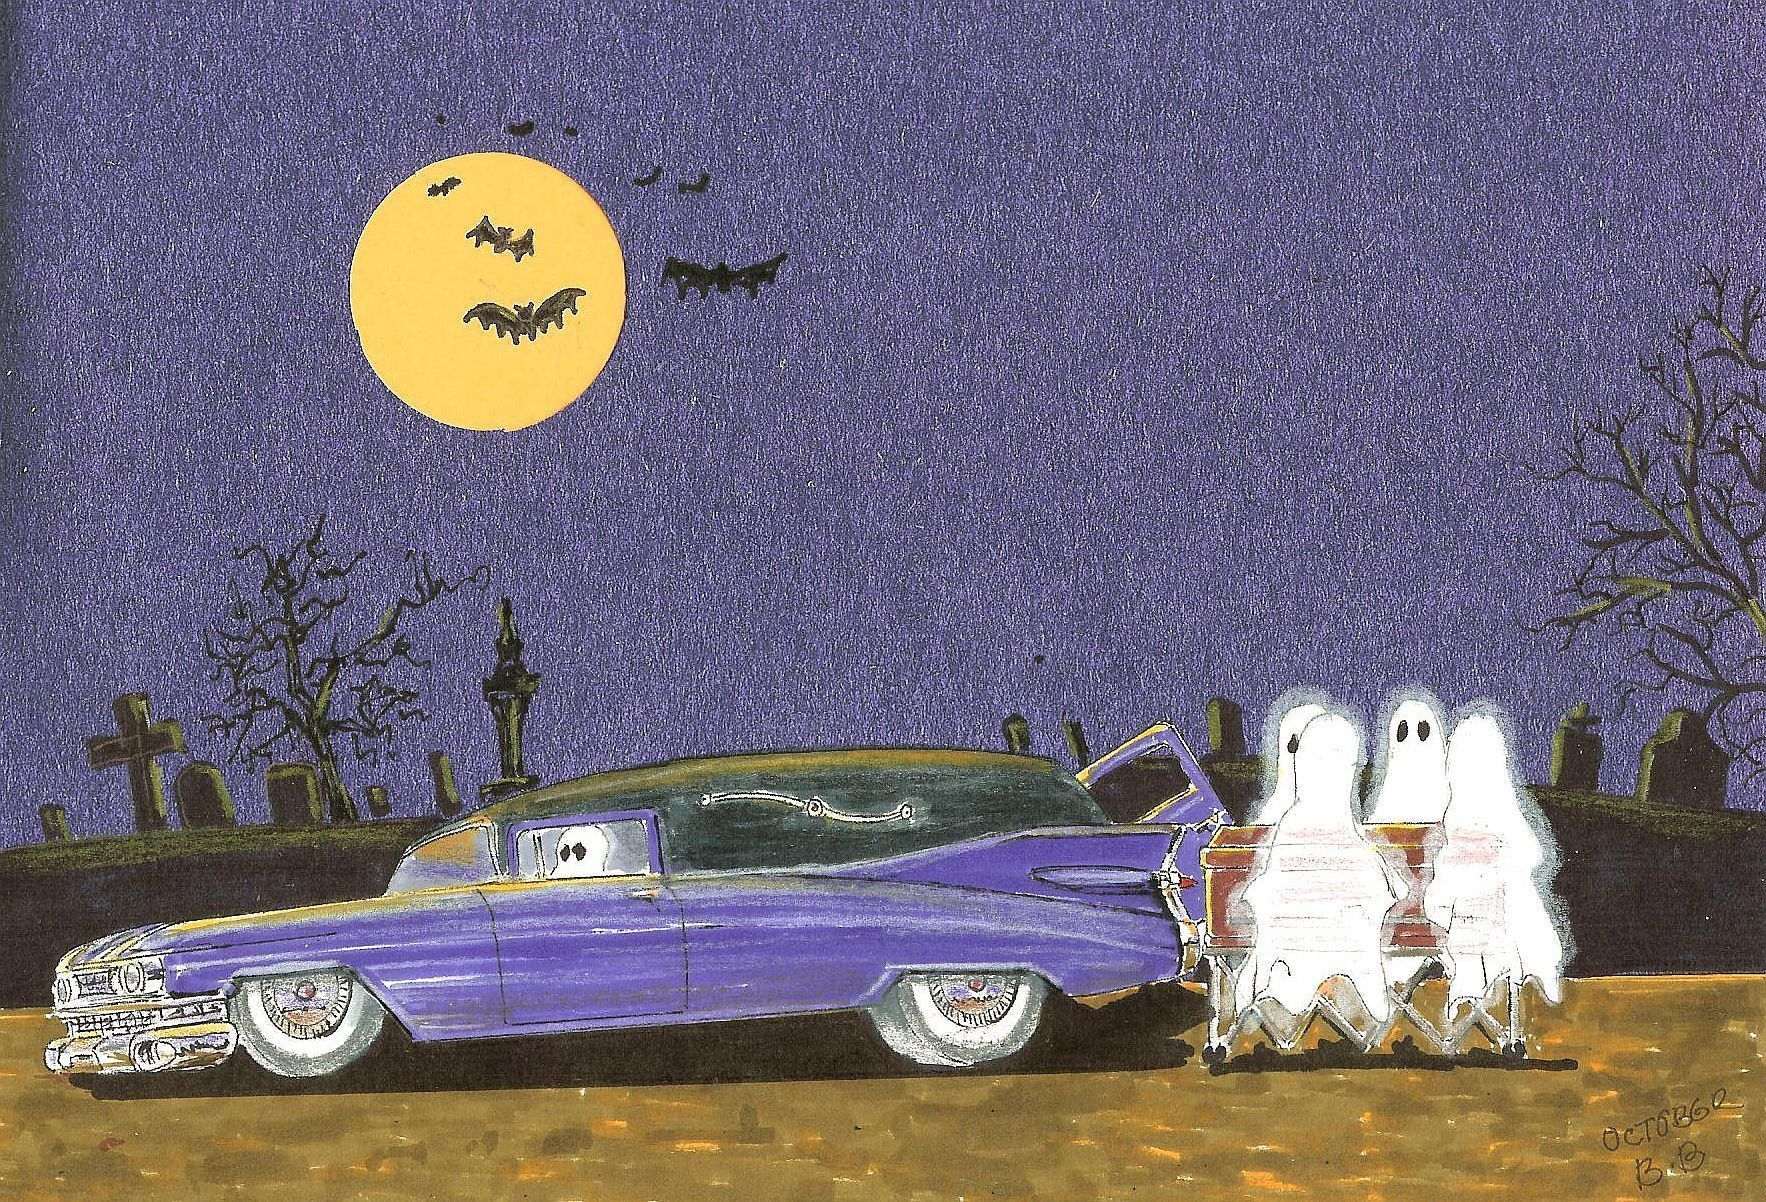 Click image for larger version  Name:halloween 2.jpg Views:1155 Size:846.1 KB ID:88057